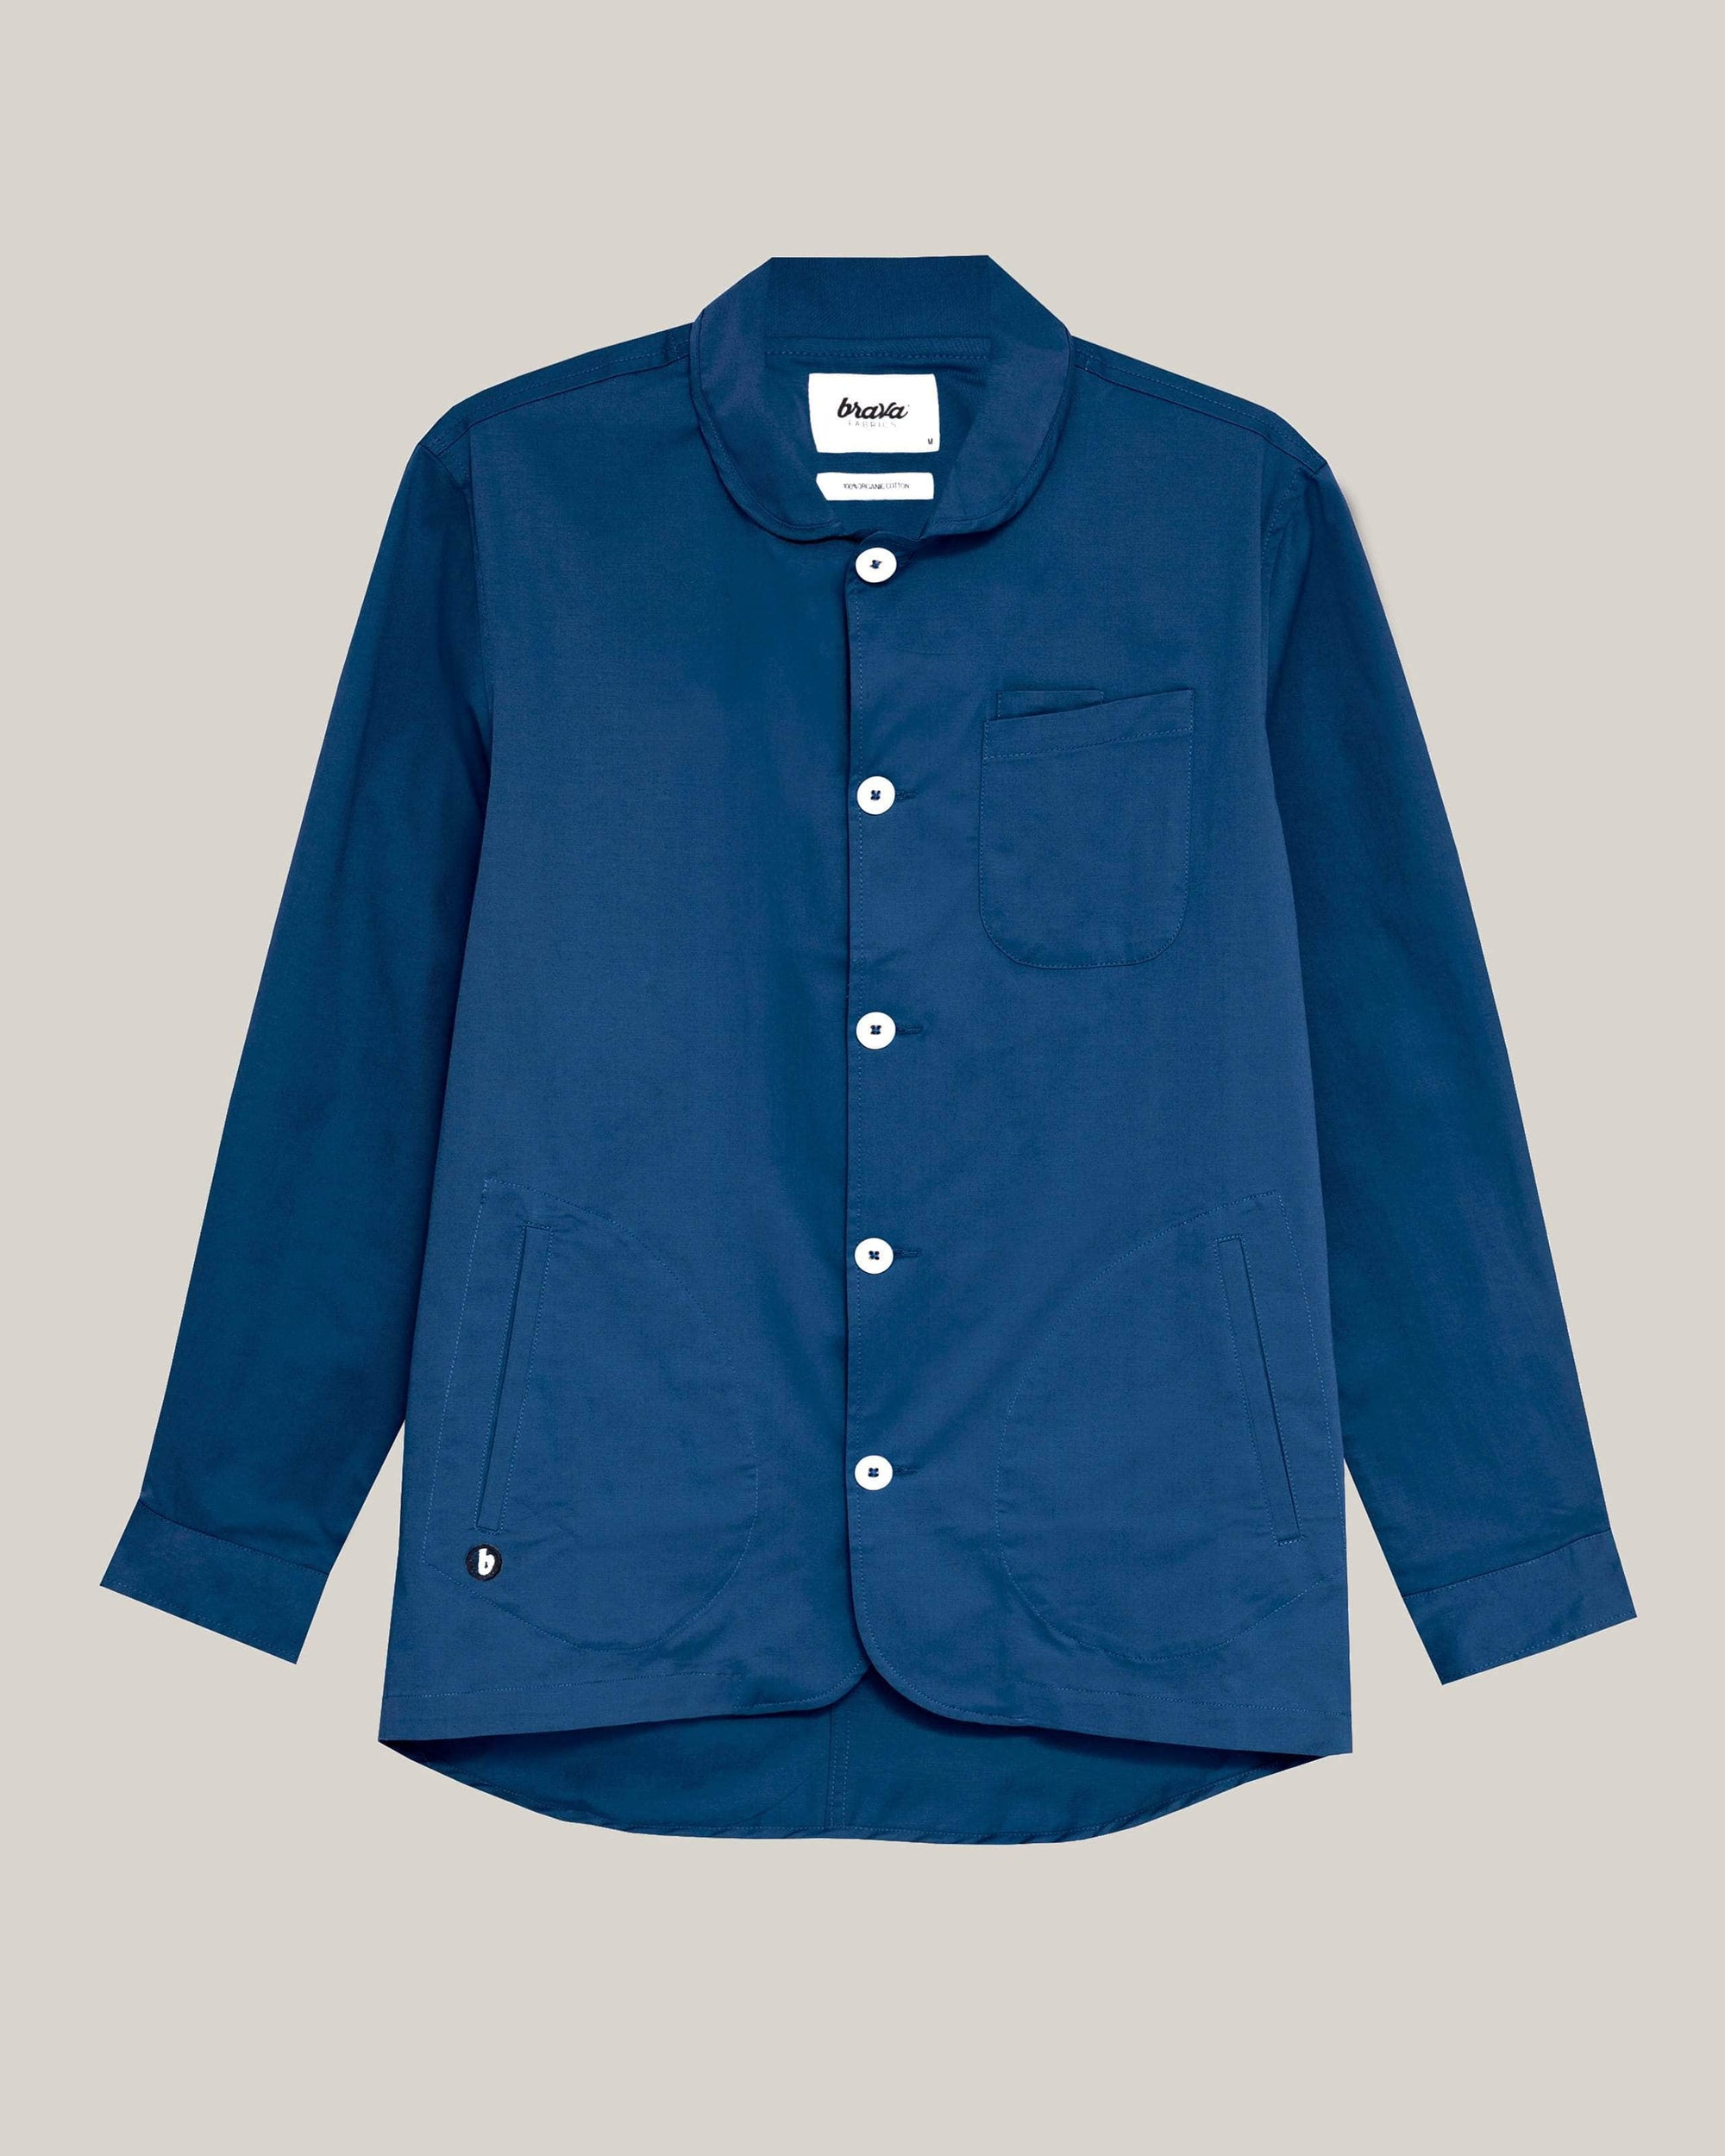 Brava Fabrics - Lightweight Cotton Jacket for Women - Jacket made of Organic Cotton - Model Blue Essential